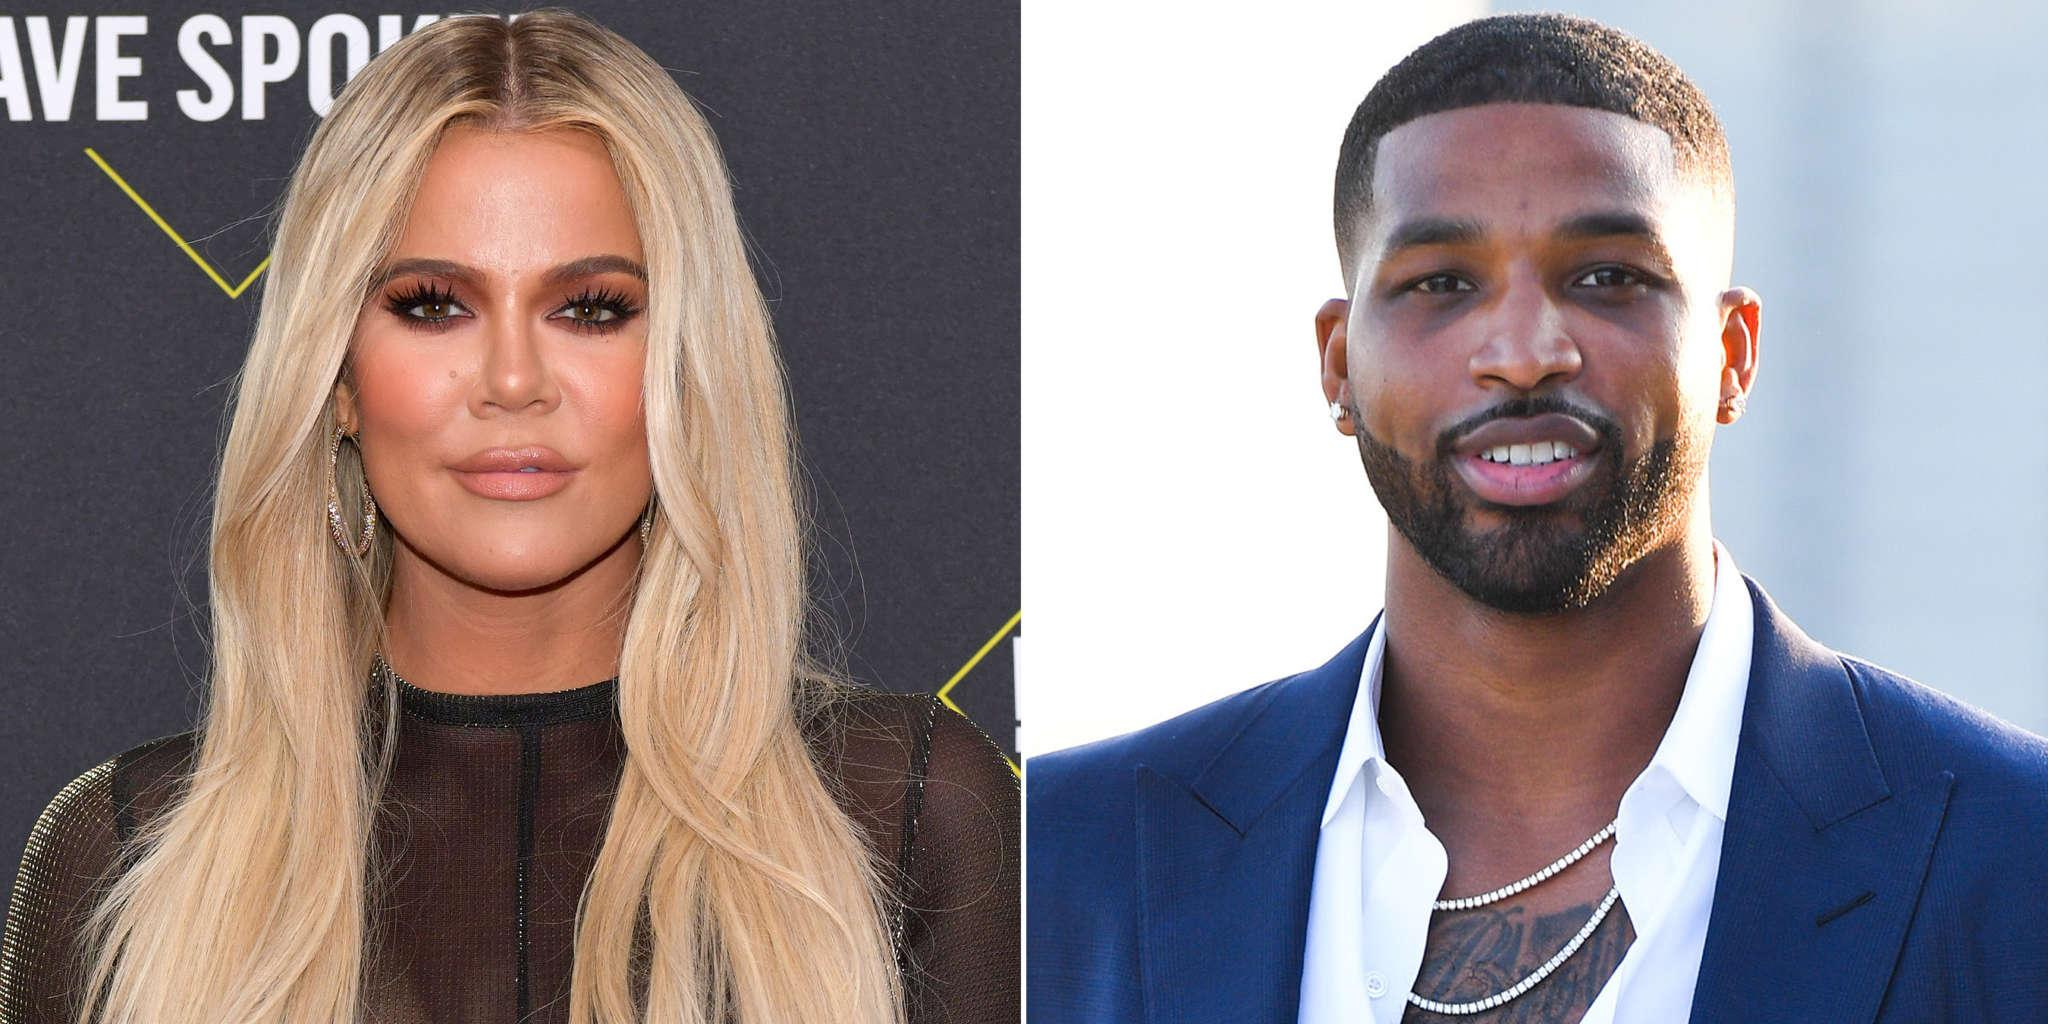 KUWK: Khloe Kardashian Reportedly Forgiving Tristan Thompson Because Of His 'Bond' With Their Daughter - He's Softening Her Heart!